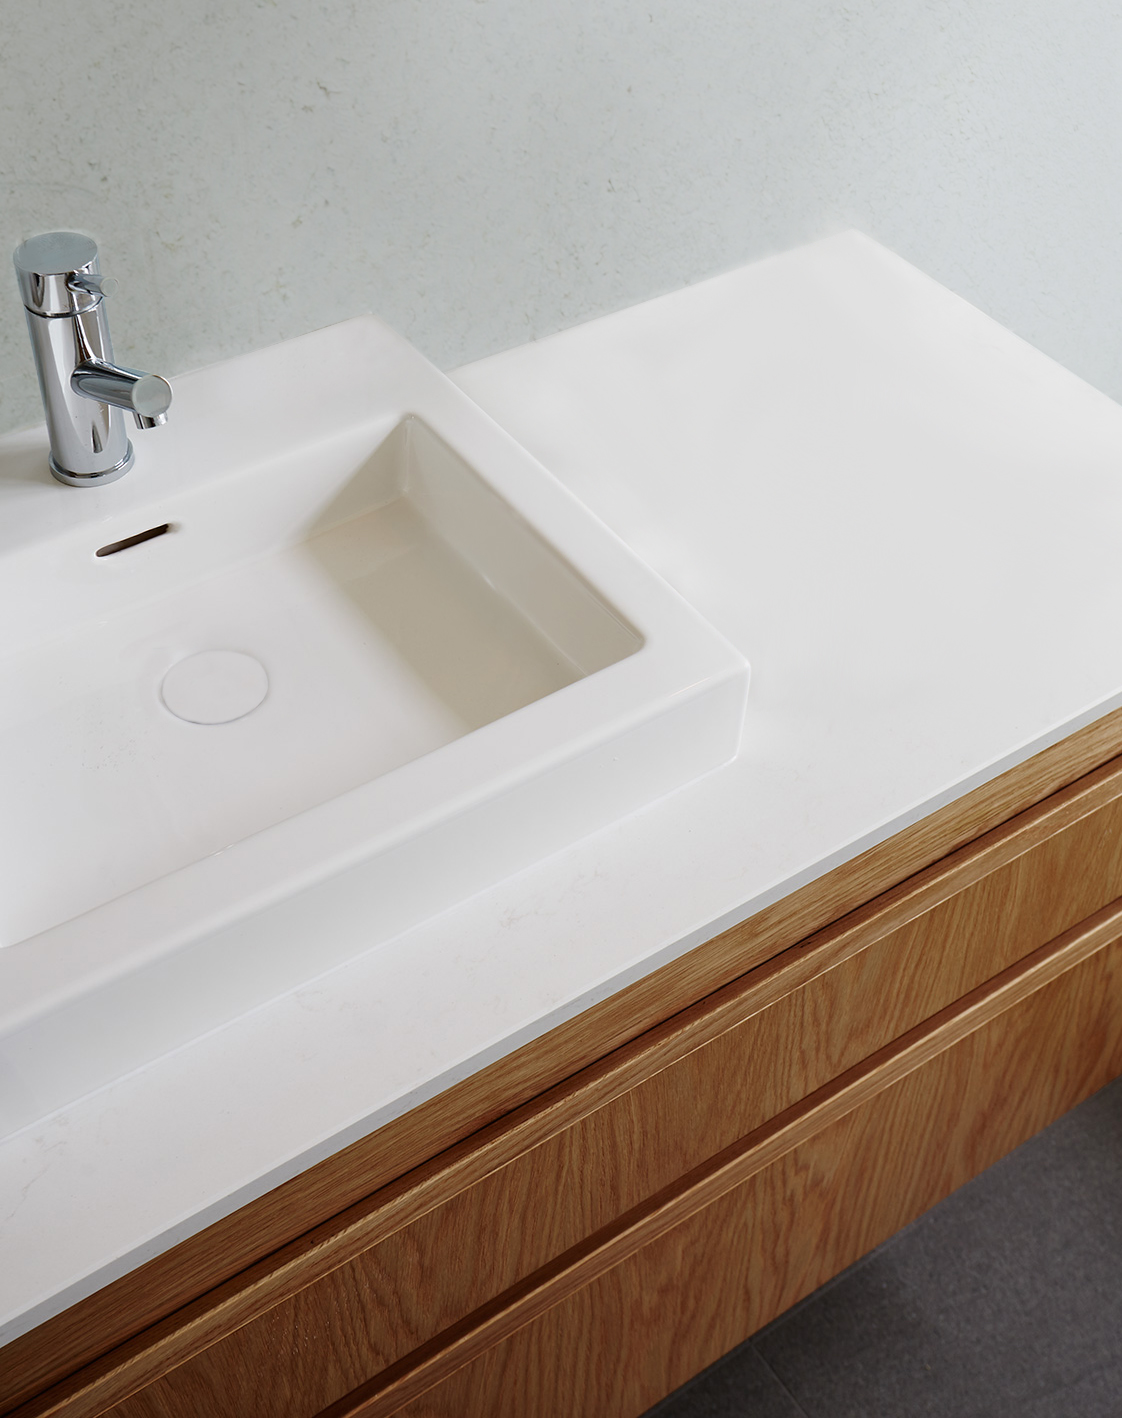 Bathroom Taps  Bath Taps amp Bathroom Sink Taps  Wolseley